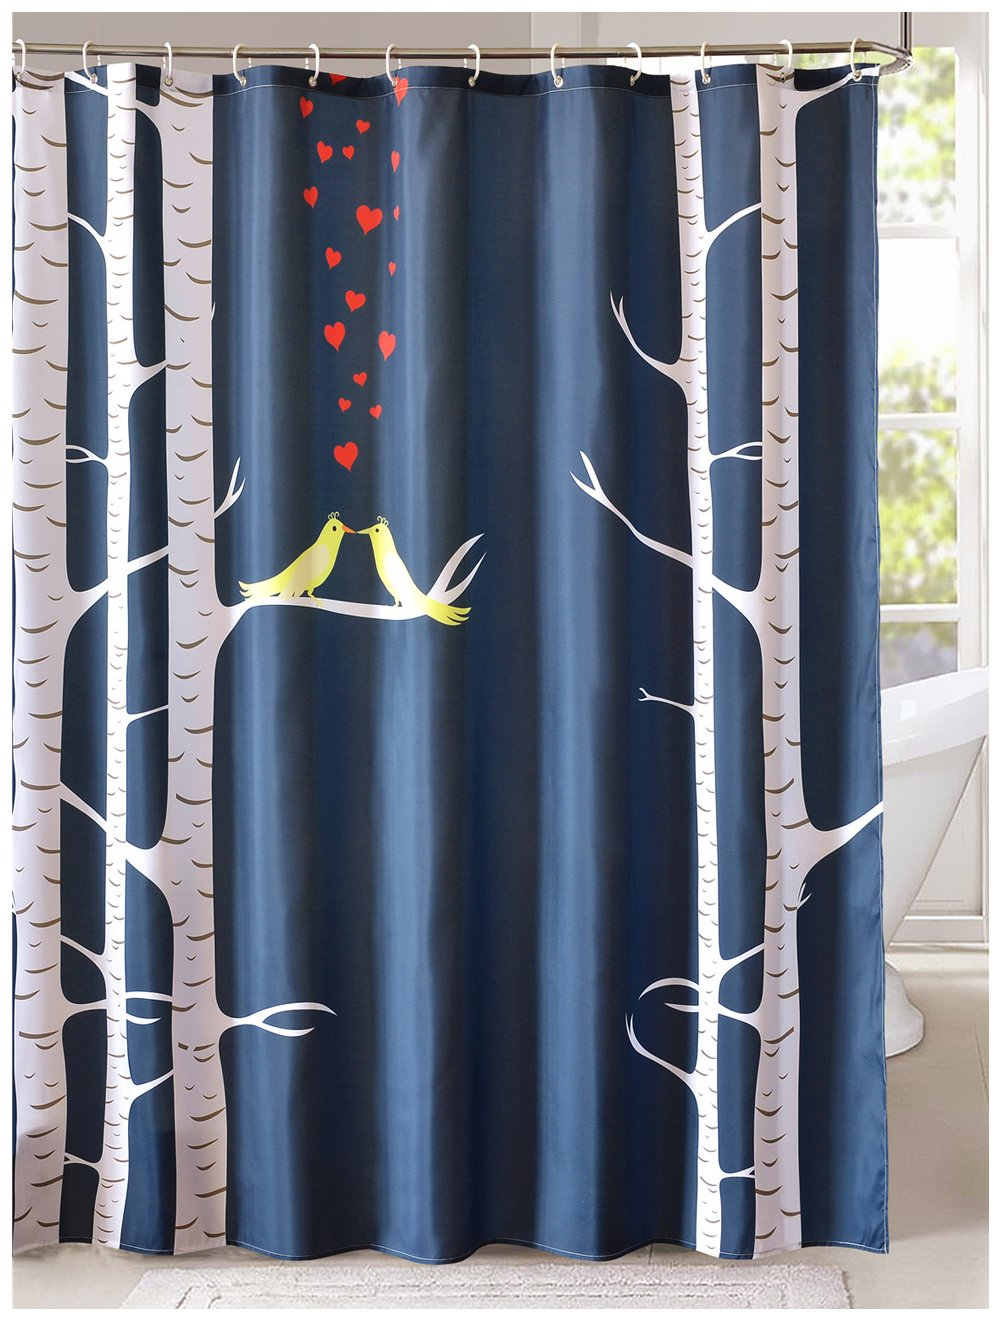 LanMeng Fabric Shower Curtain, Love Birds in the Woods, Navy Deep Blue Gray Yellow Red (72-by-72 inches)